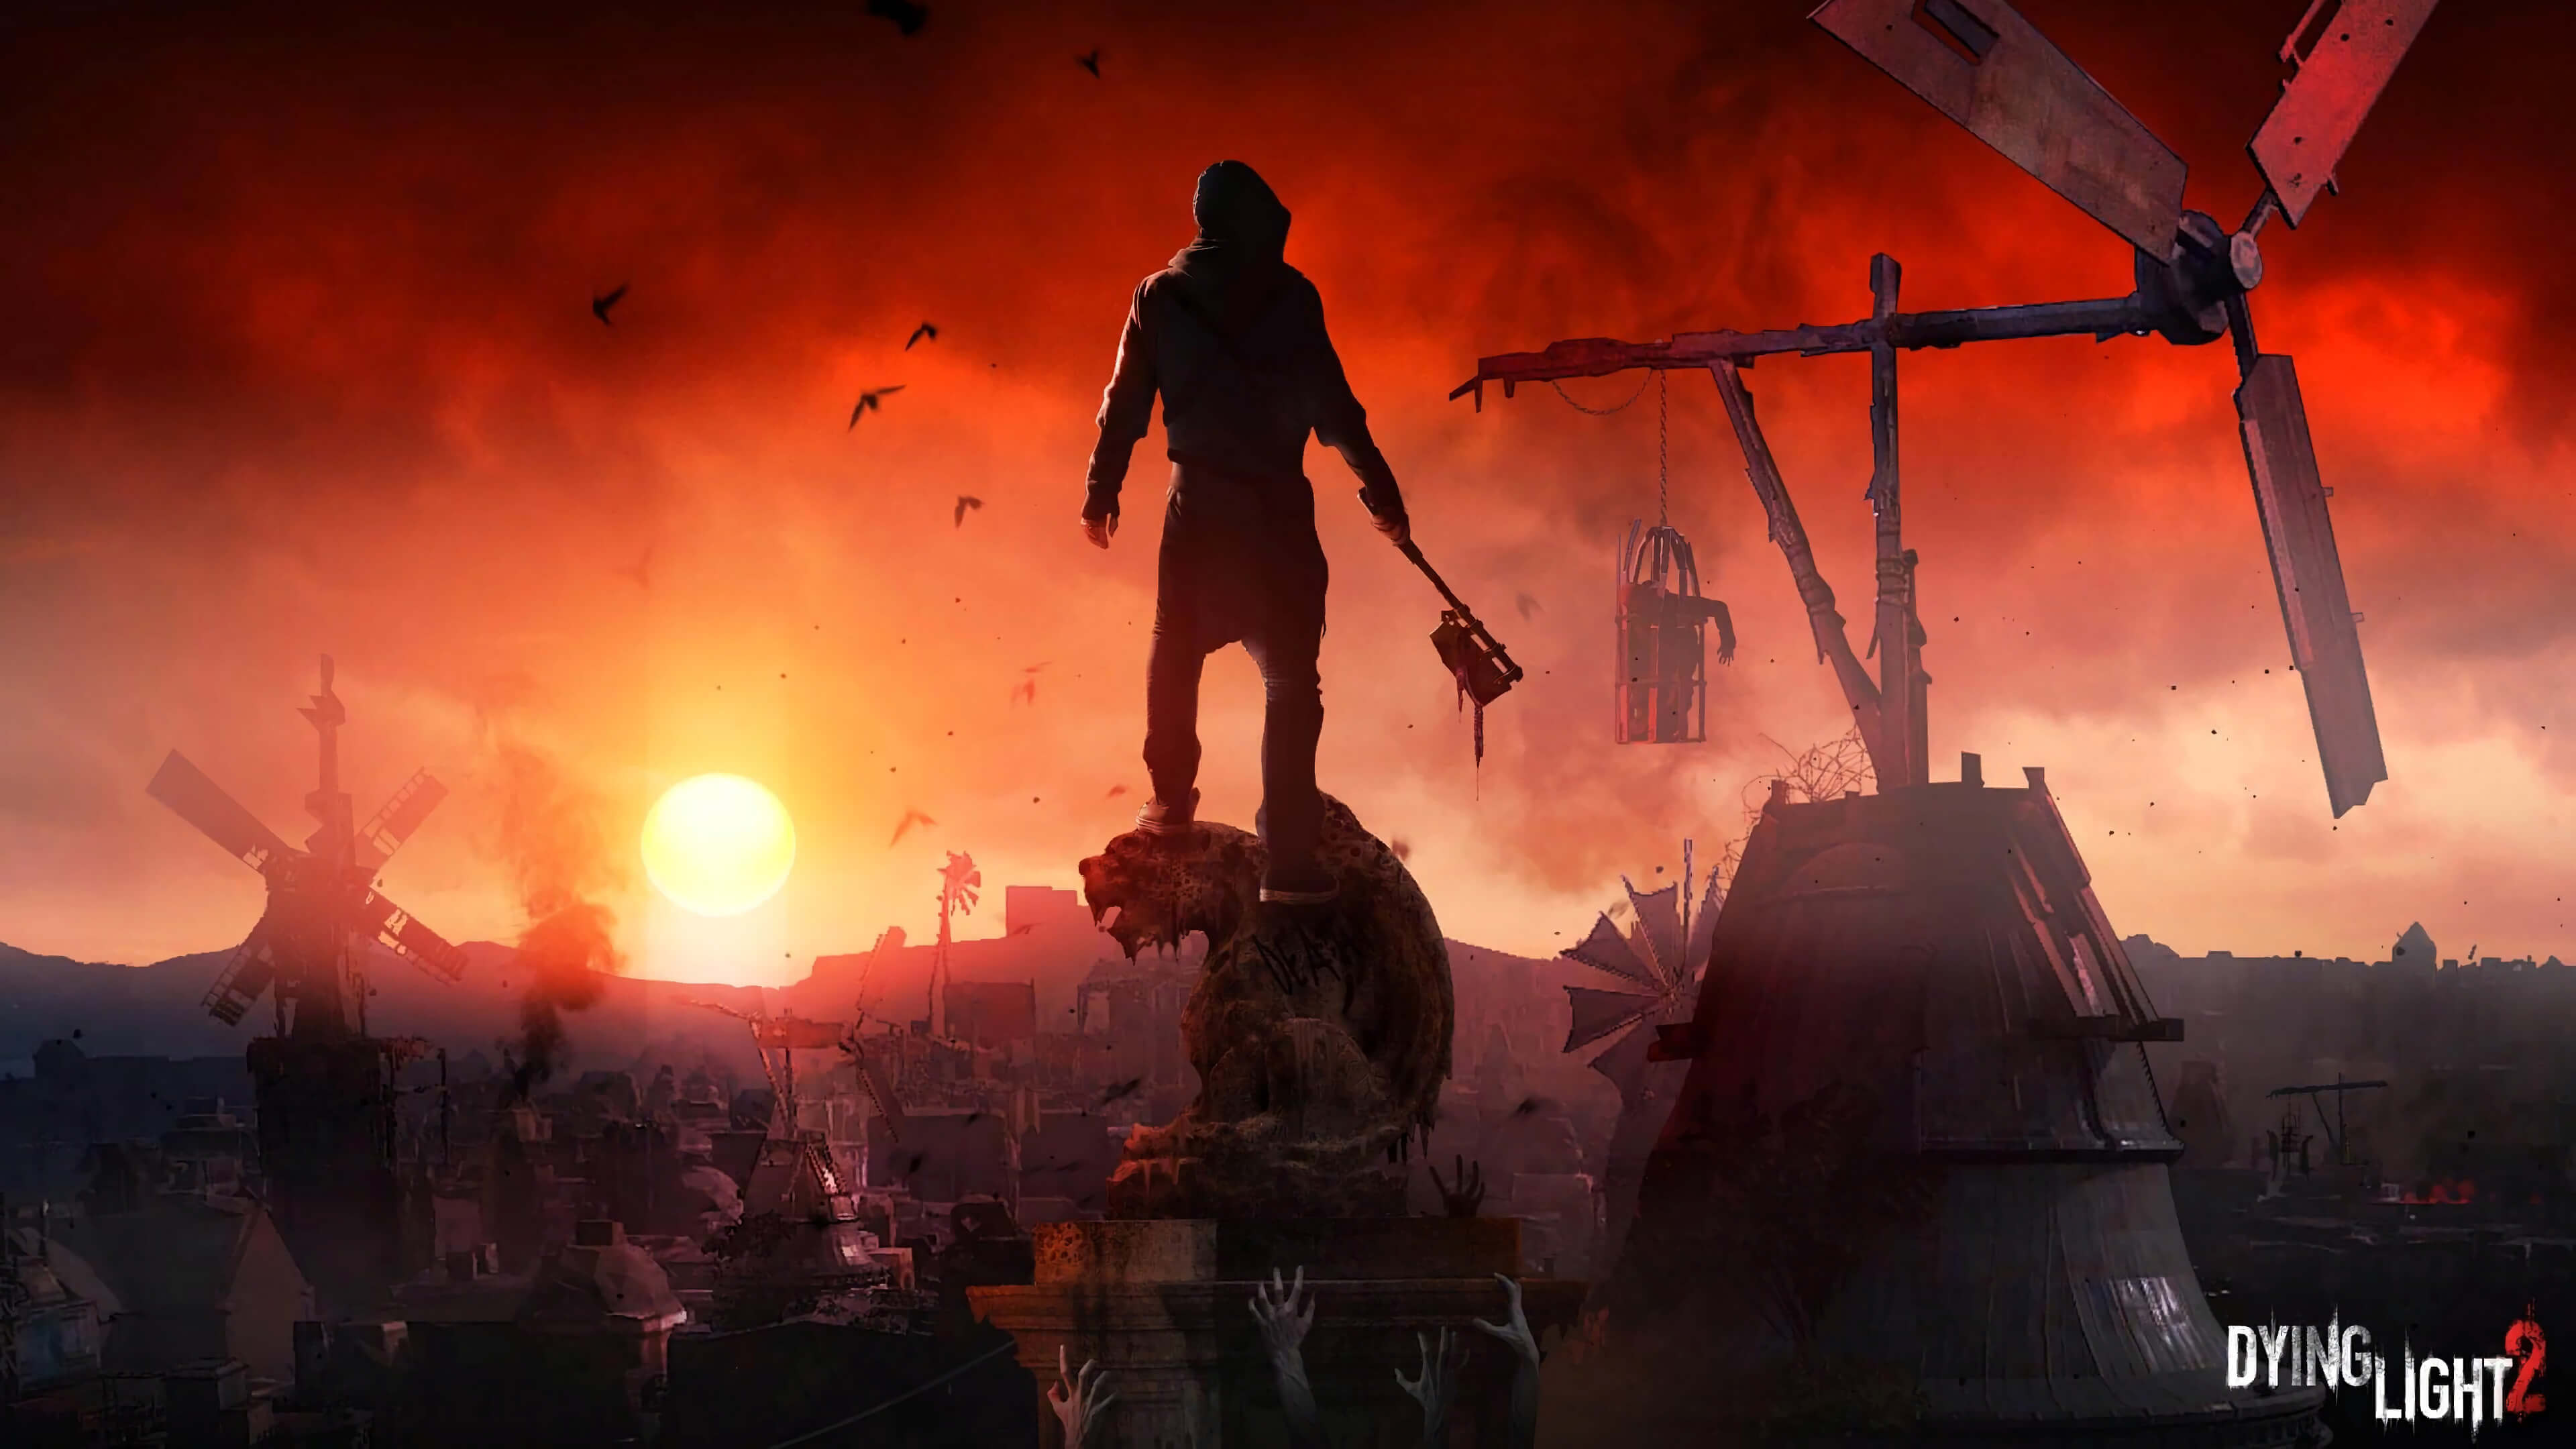 Dying Light 2 Background Hd Wallpaper 69787 3840x2160px